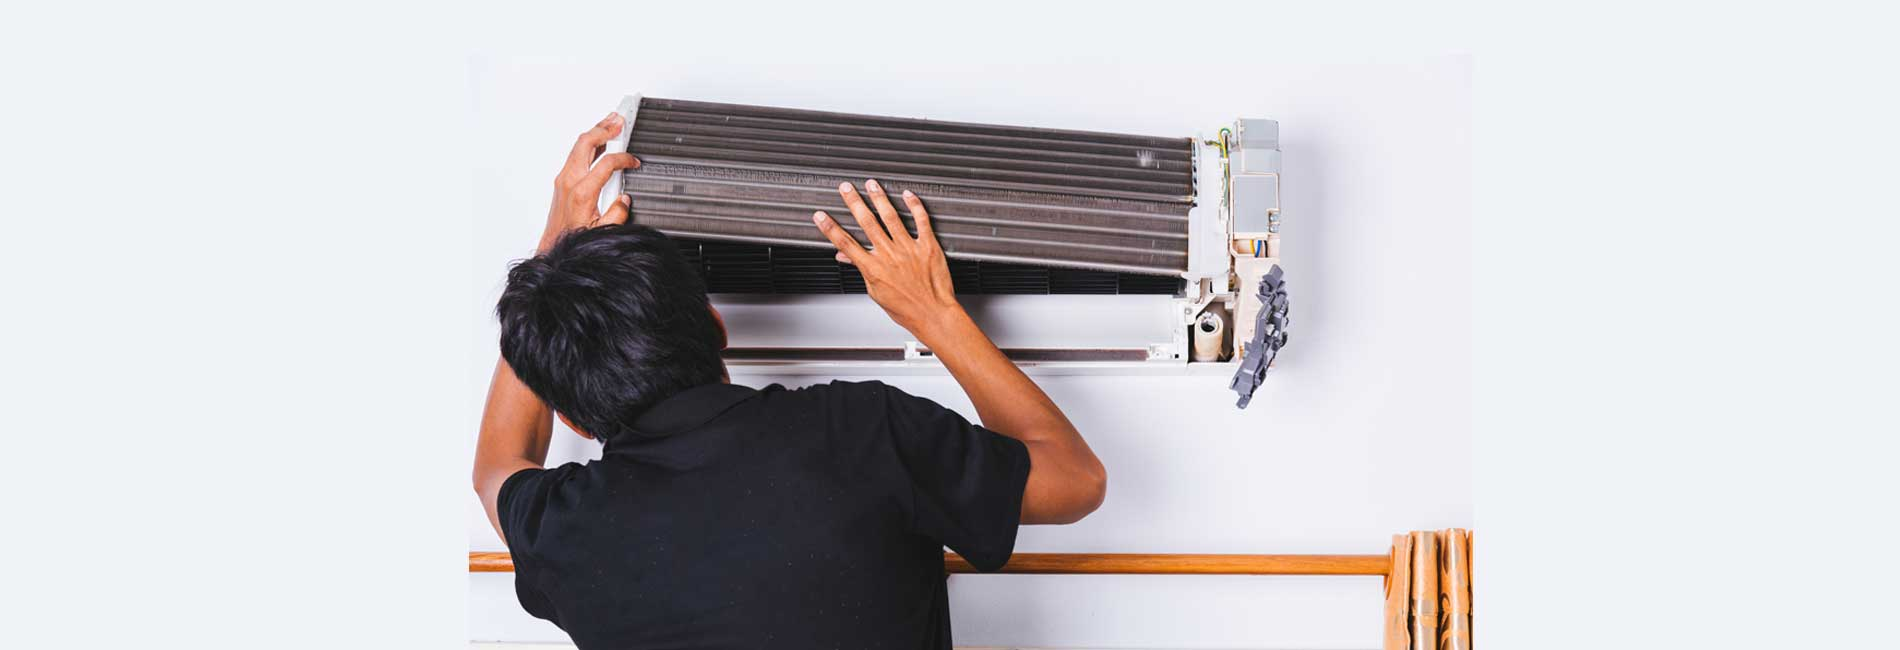 Air Conditioner Service in Thiruneermalai